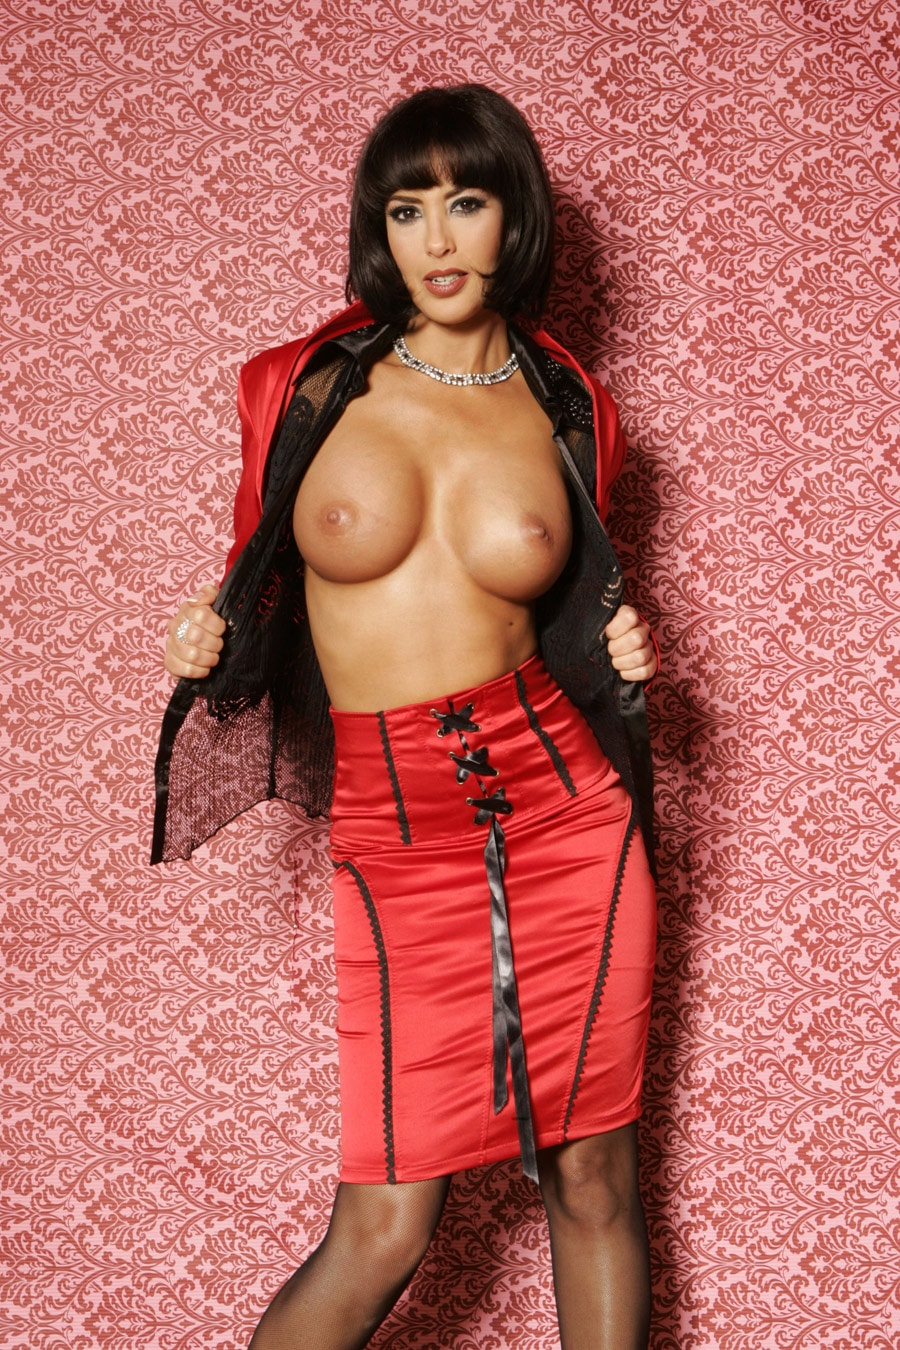 yasmine-pute-frange-lingerie-rouge-provocante-3